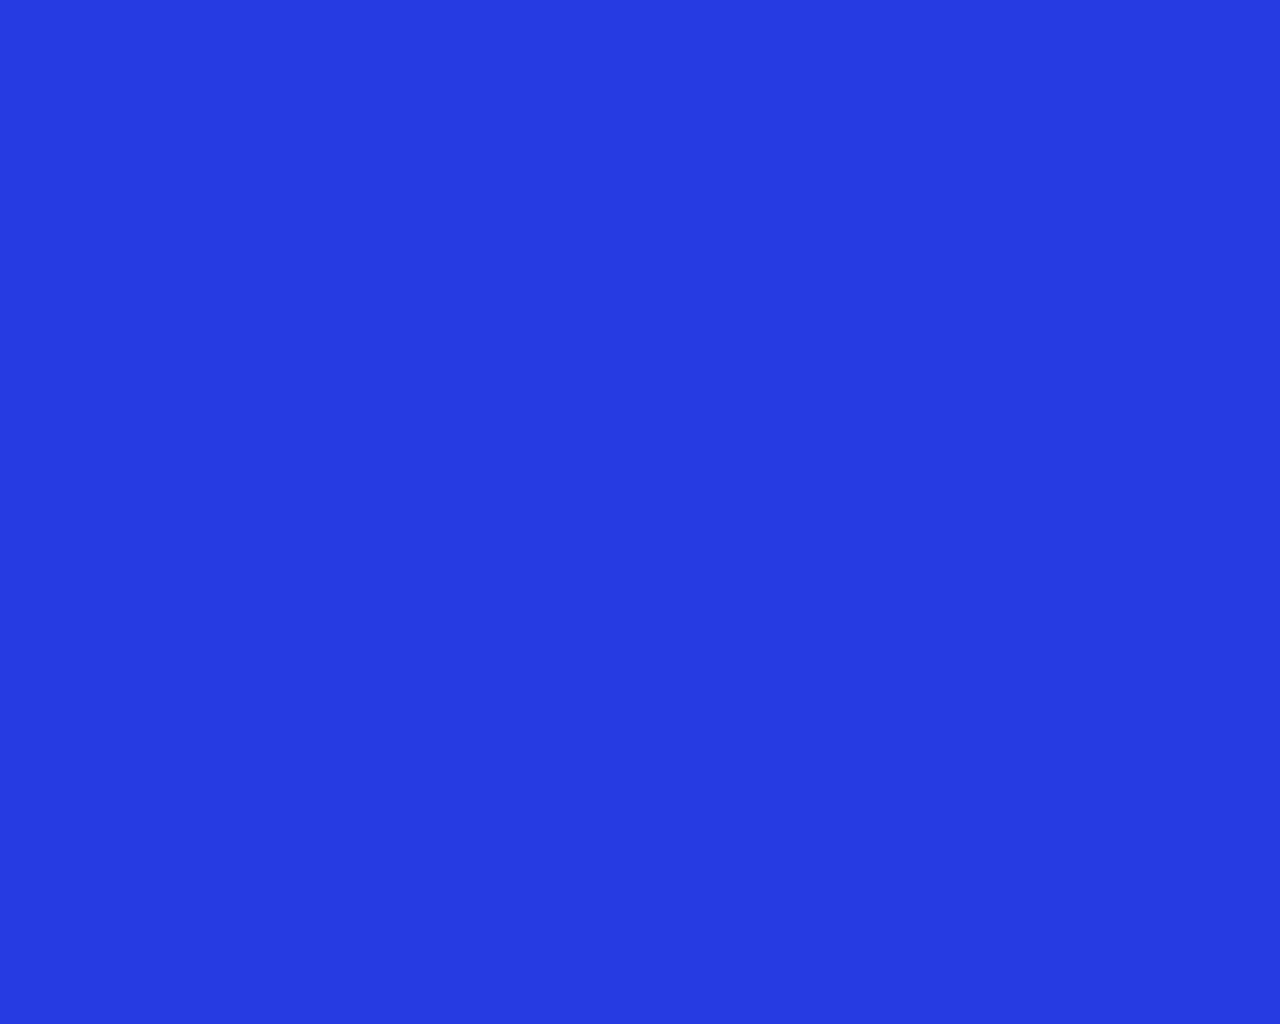 1280x1024 Palatinate Blue Solid Color Background